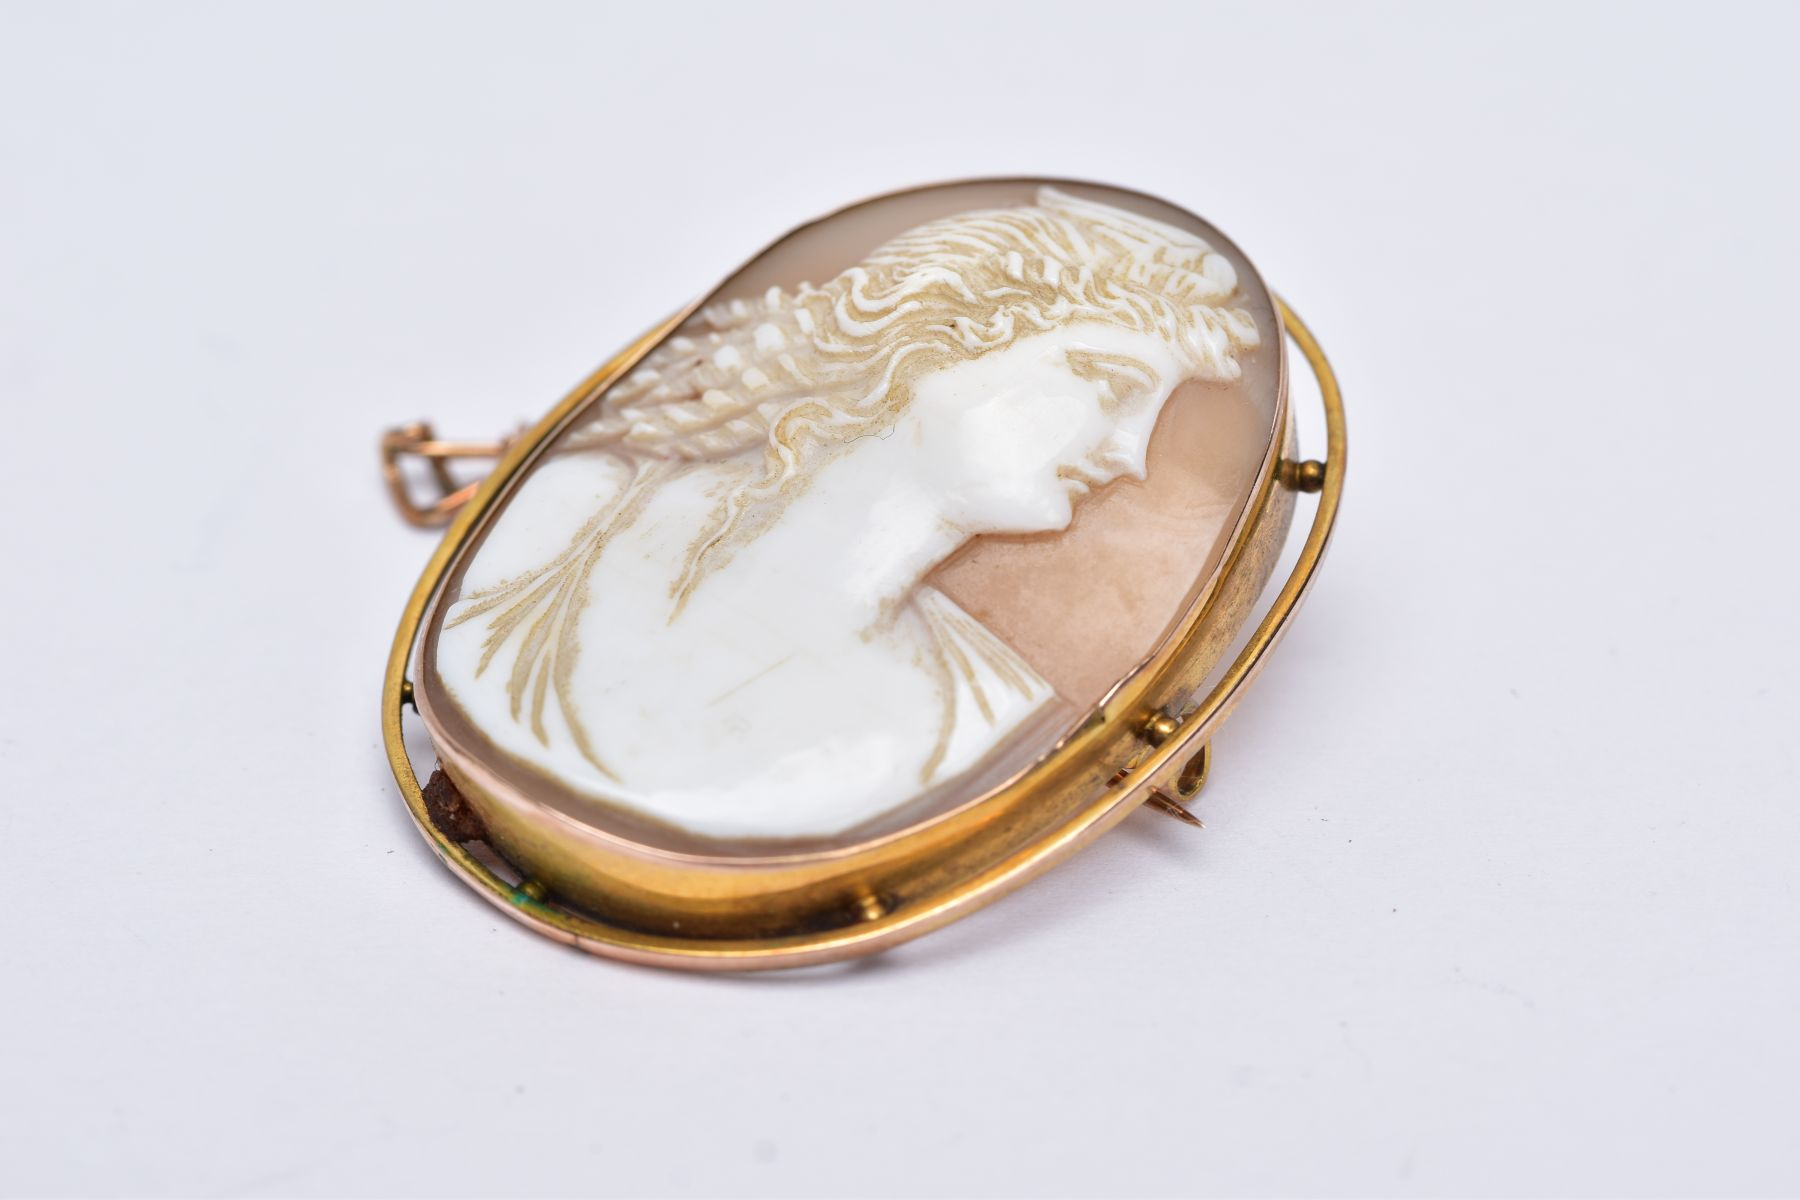 A GOLD CAMEO BROOCH, depicting a maiden in profile, measuring approximately 42mm x 33mm, stamped ' - Image 4 of 4